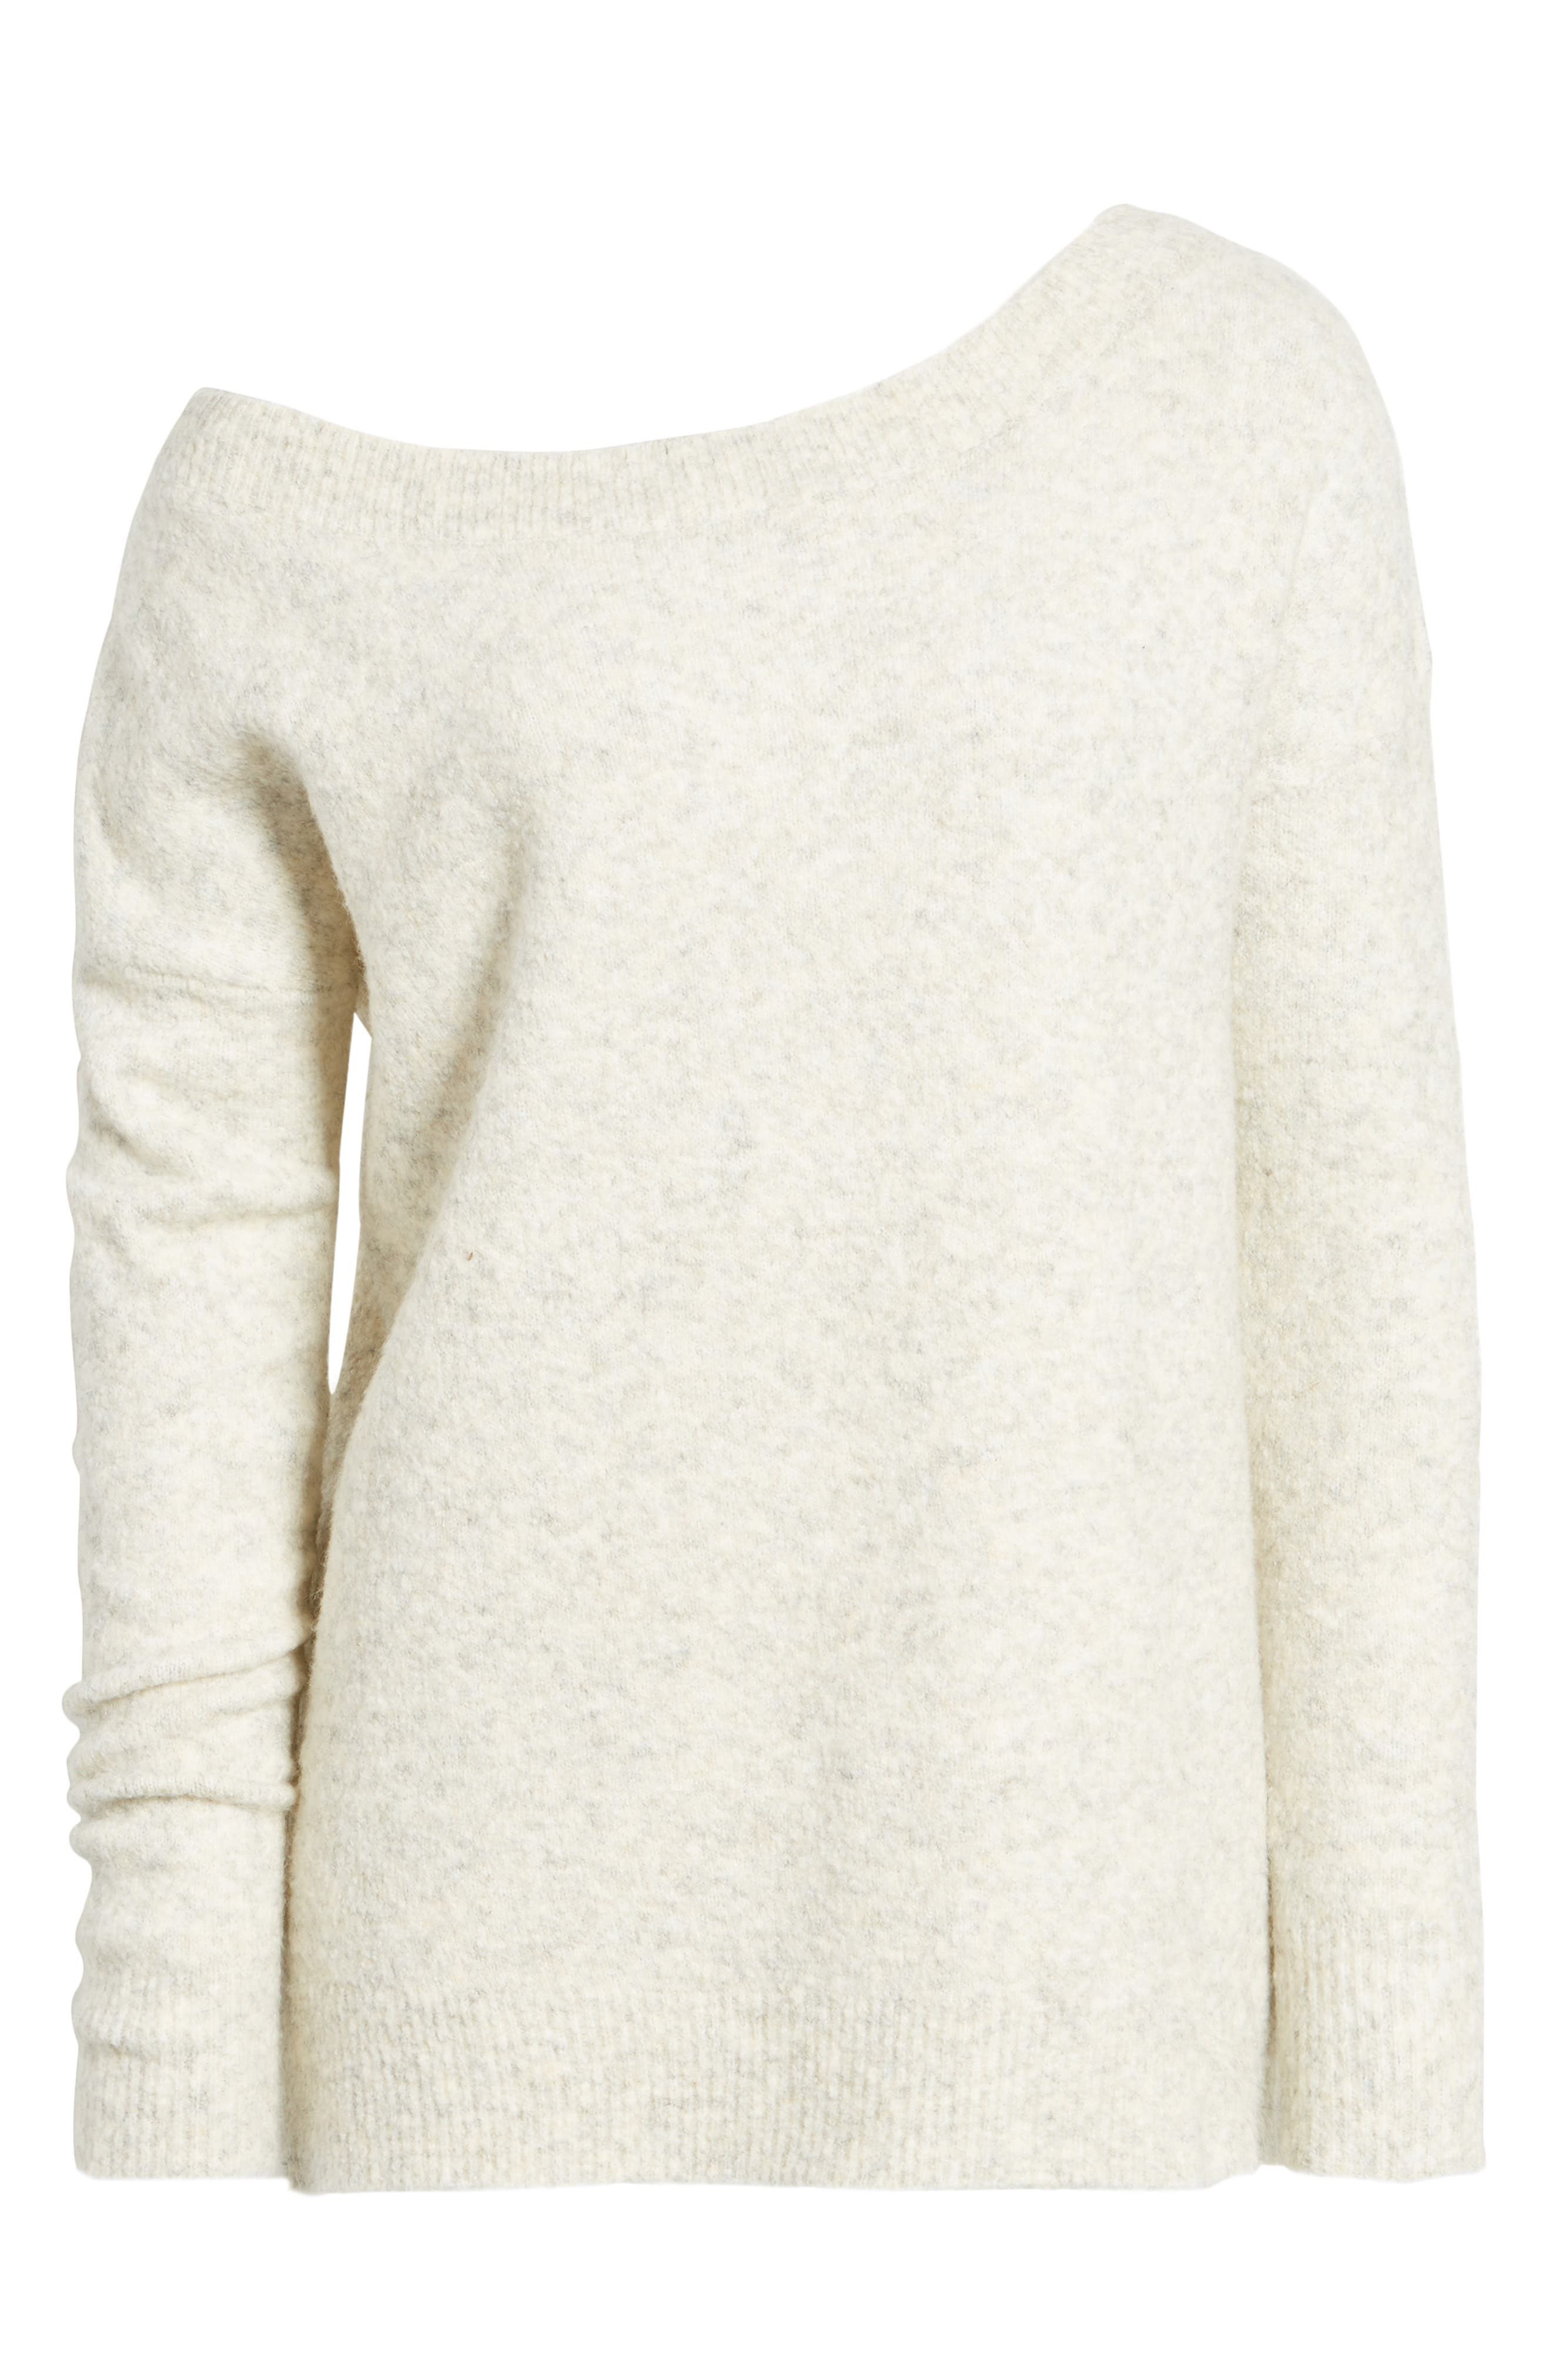 Urban Flossy One-Shoulder Sweater,                             Alternate thumbnail 12, color,